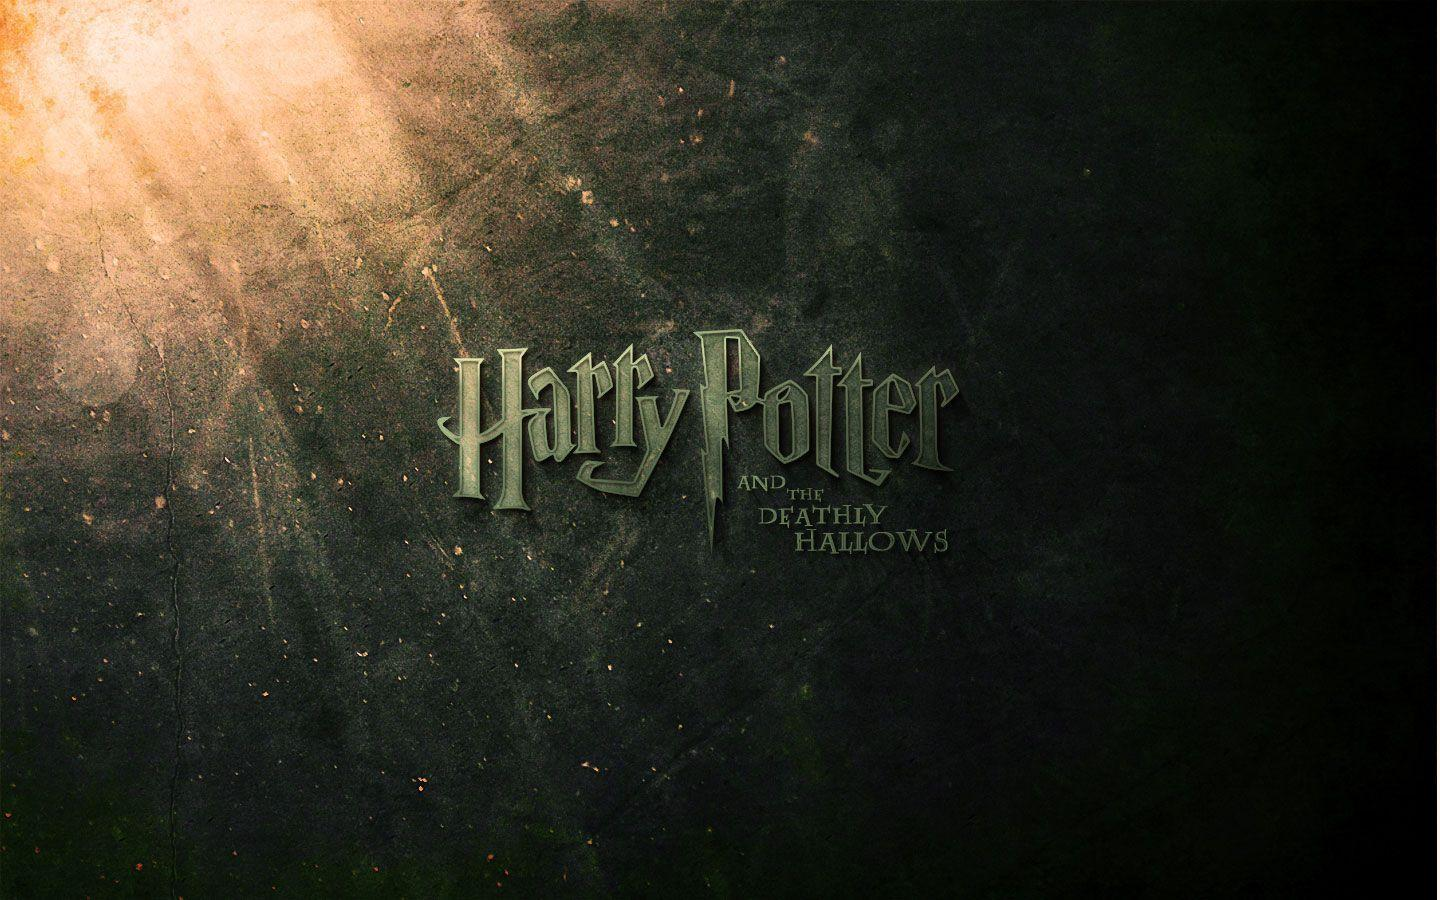 Wallpapers Harry Potter Harry Potter Wallpaper Ecosia